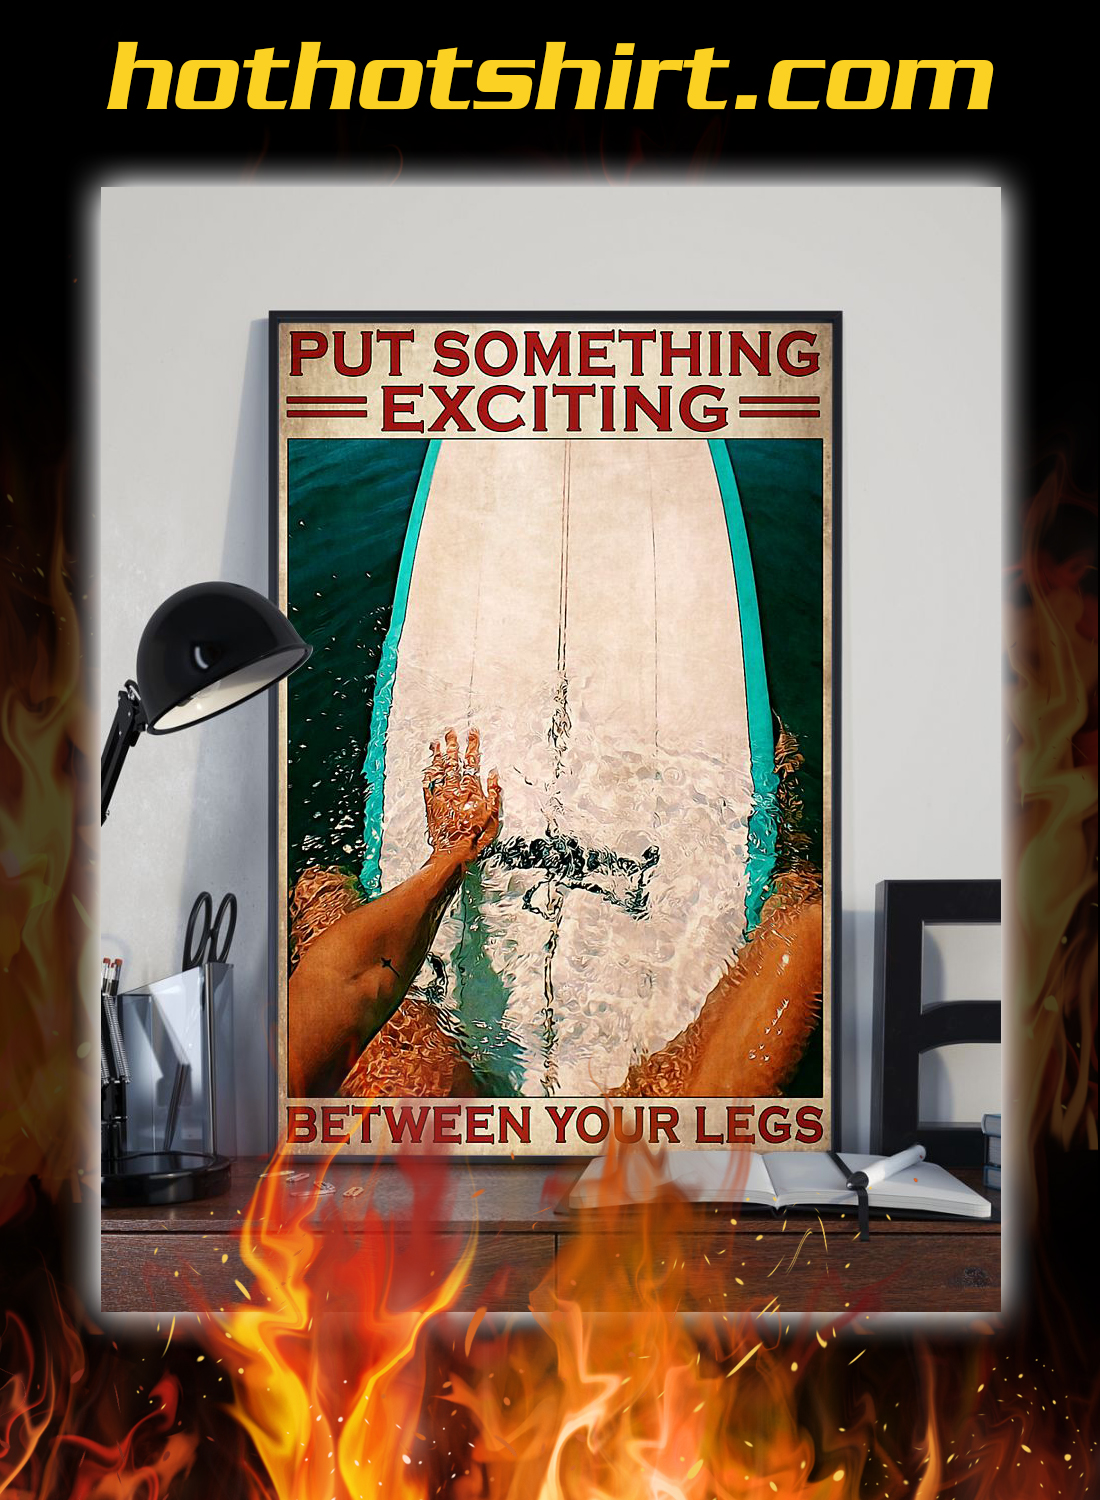 Surfing put something exciting between your legs poster 2